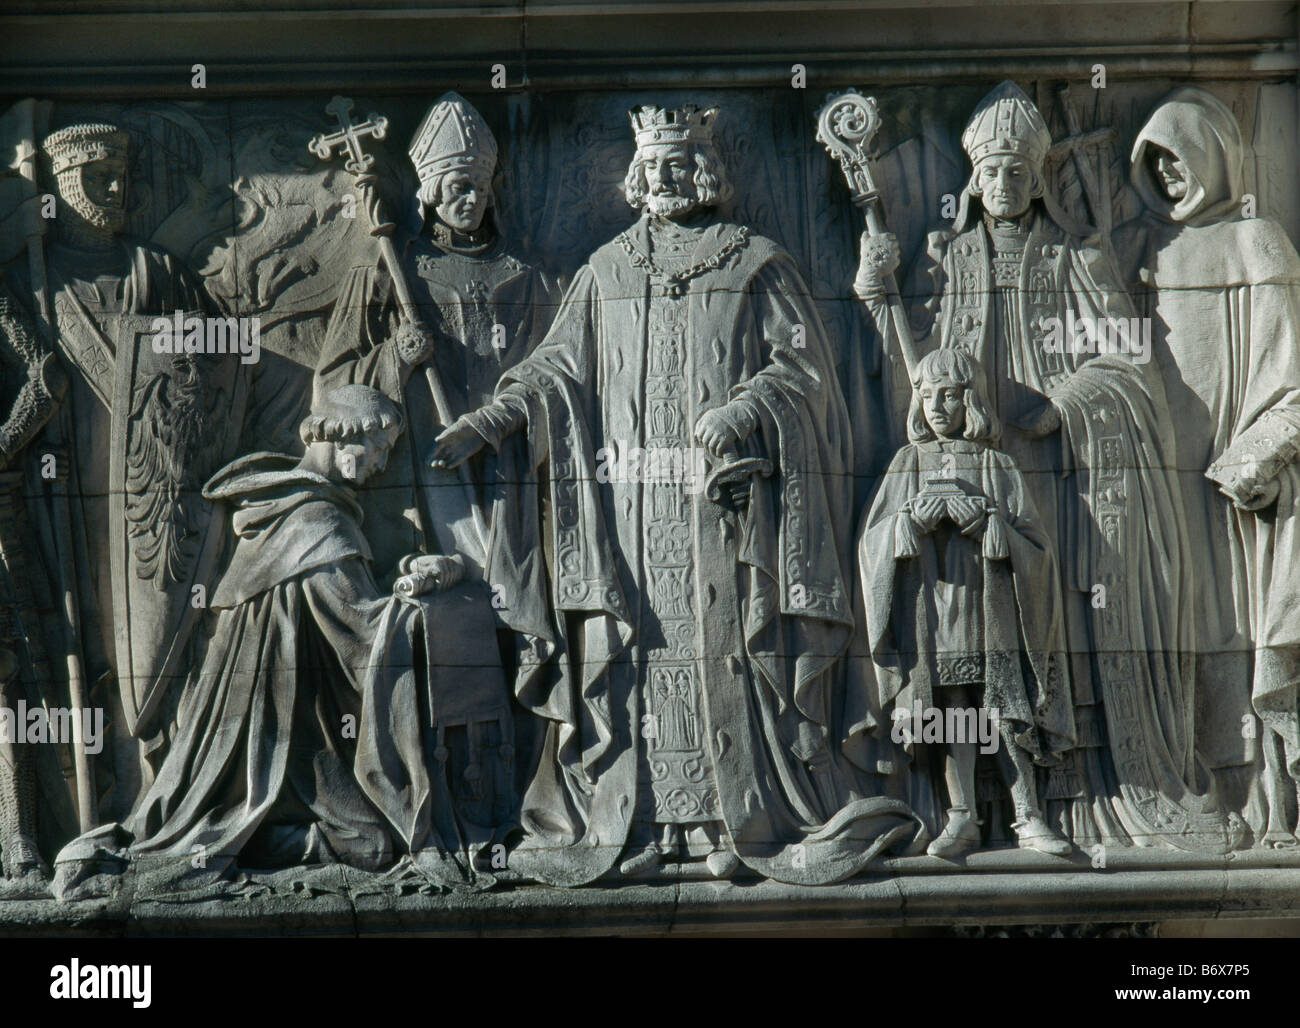 Middlesex Guildhall Frieze - Stock Image